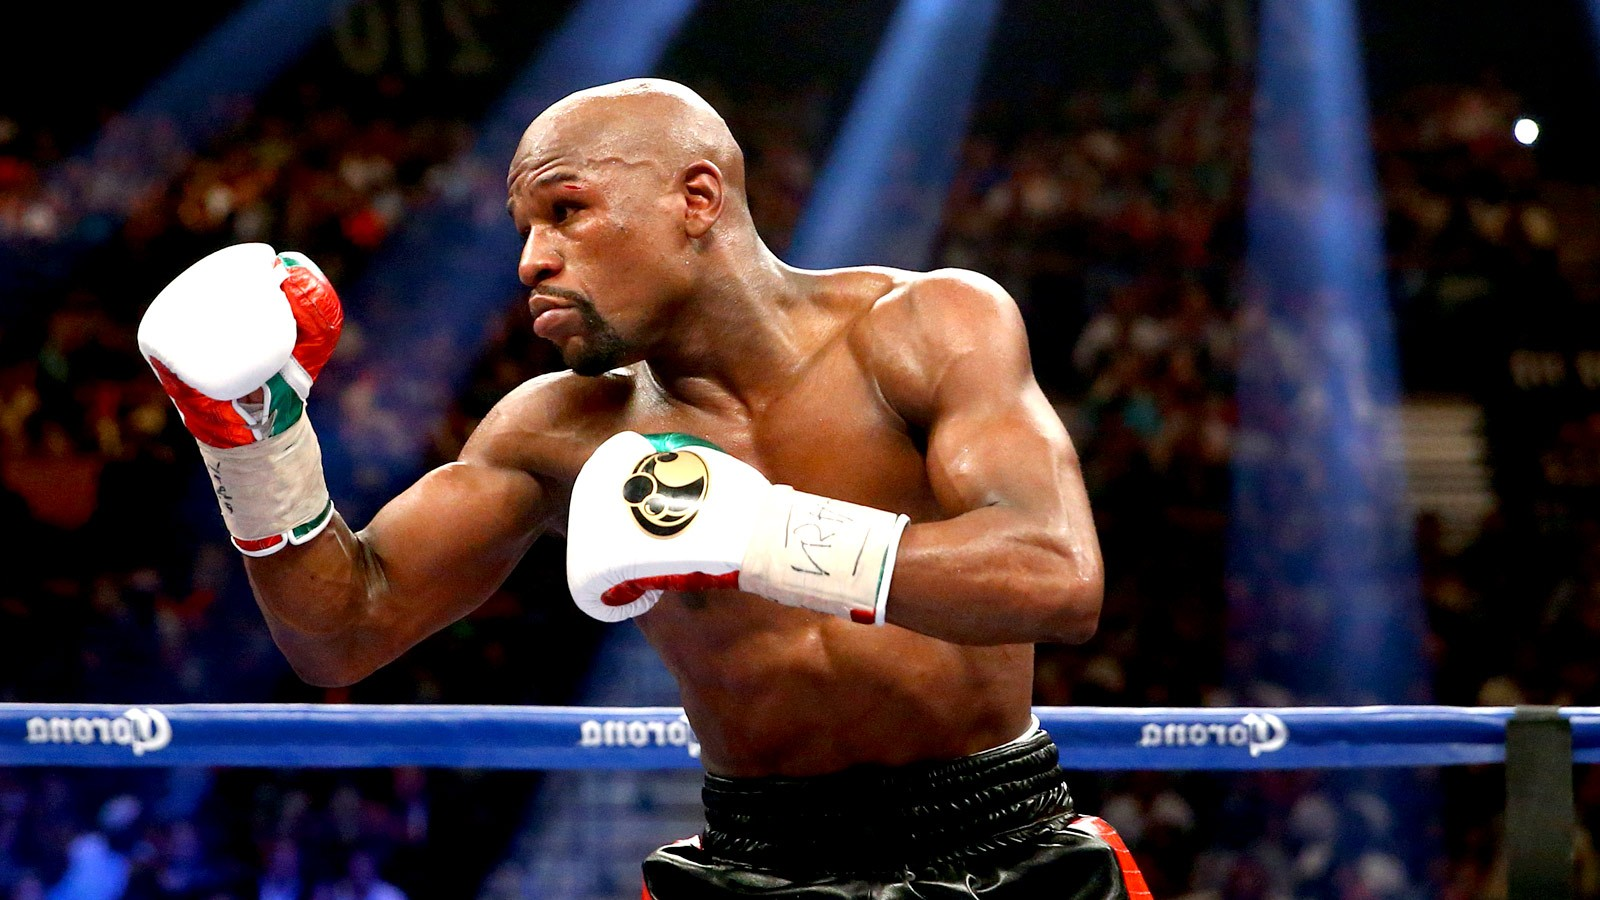 Floyd Mayweather has finally responded to Amir Khan's questionable Twitter call out